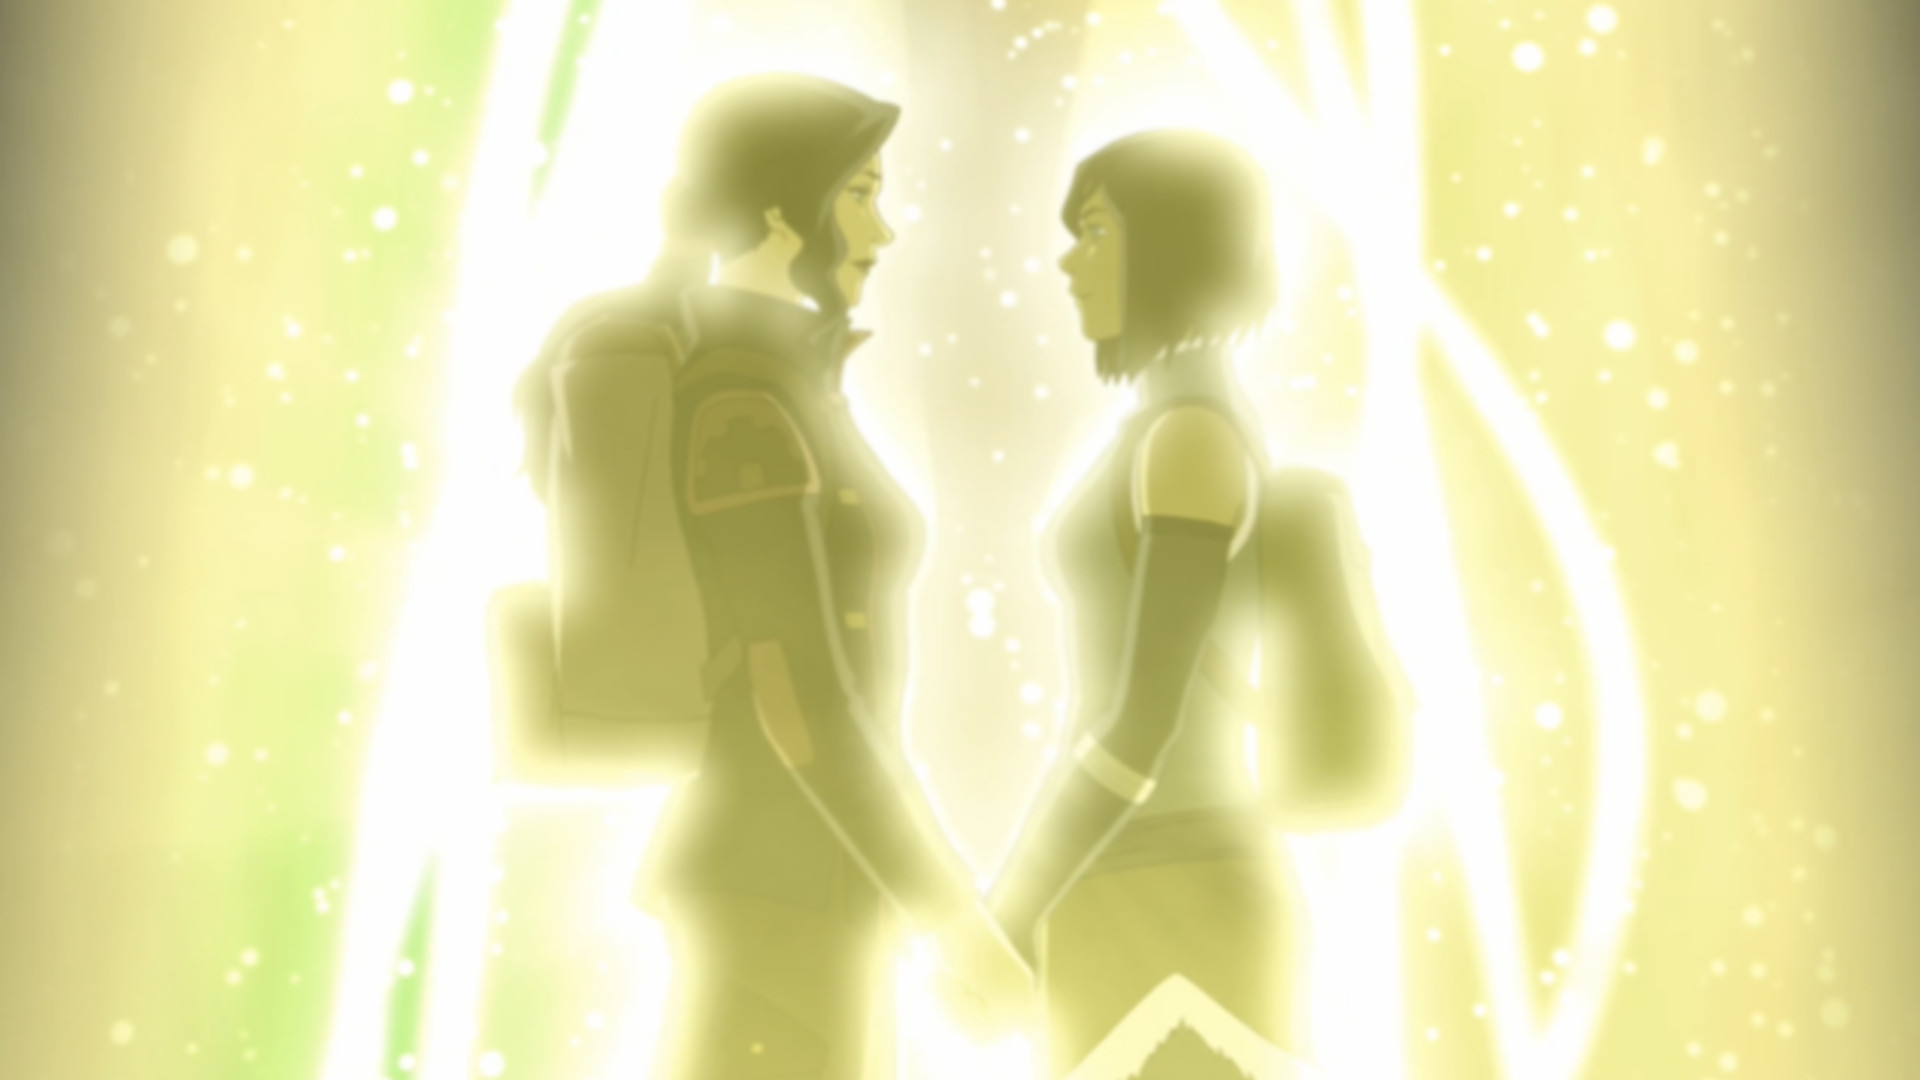 Avatar: The Last Airbender and Legend of Korra: Representation and the long game